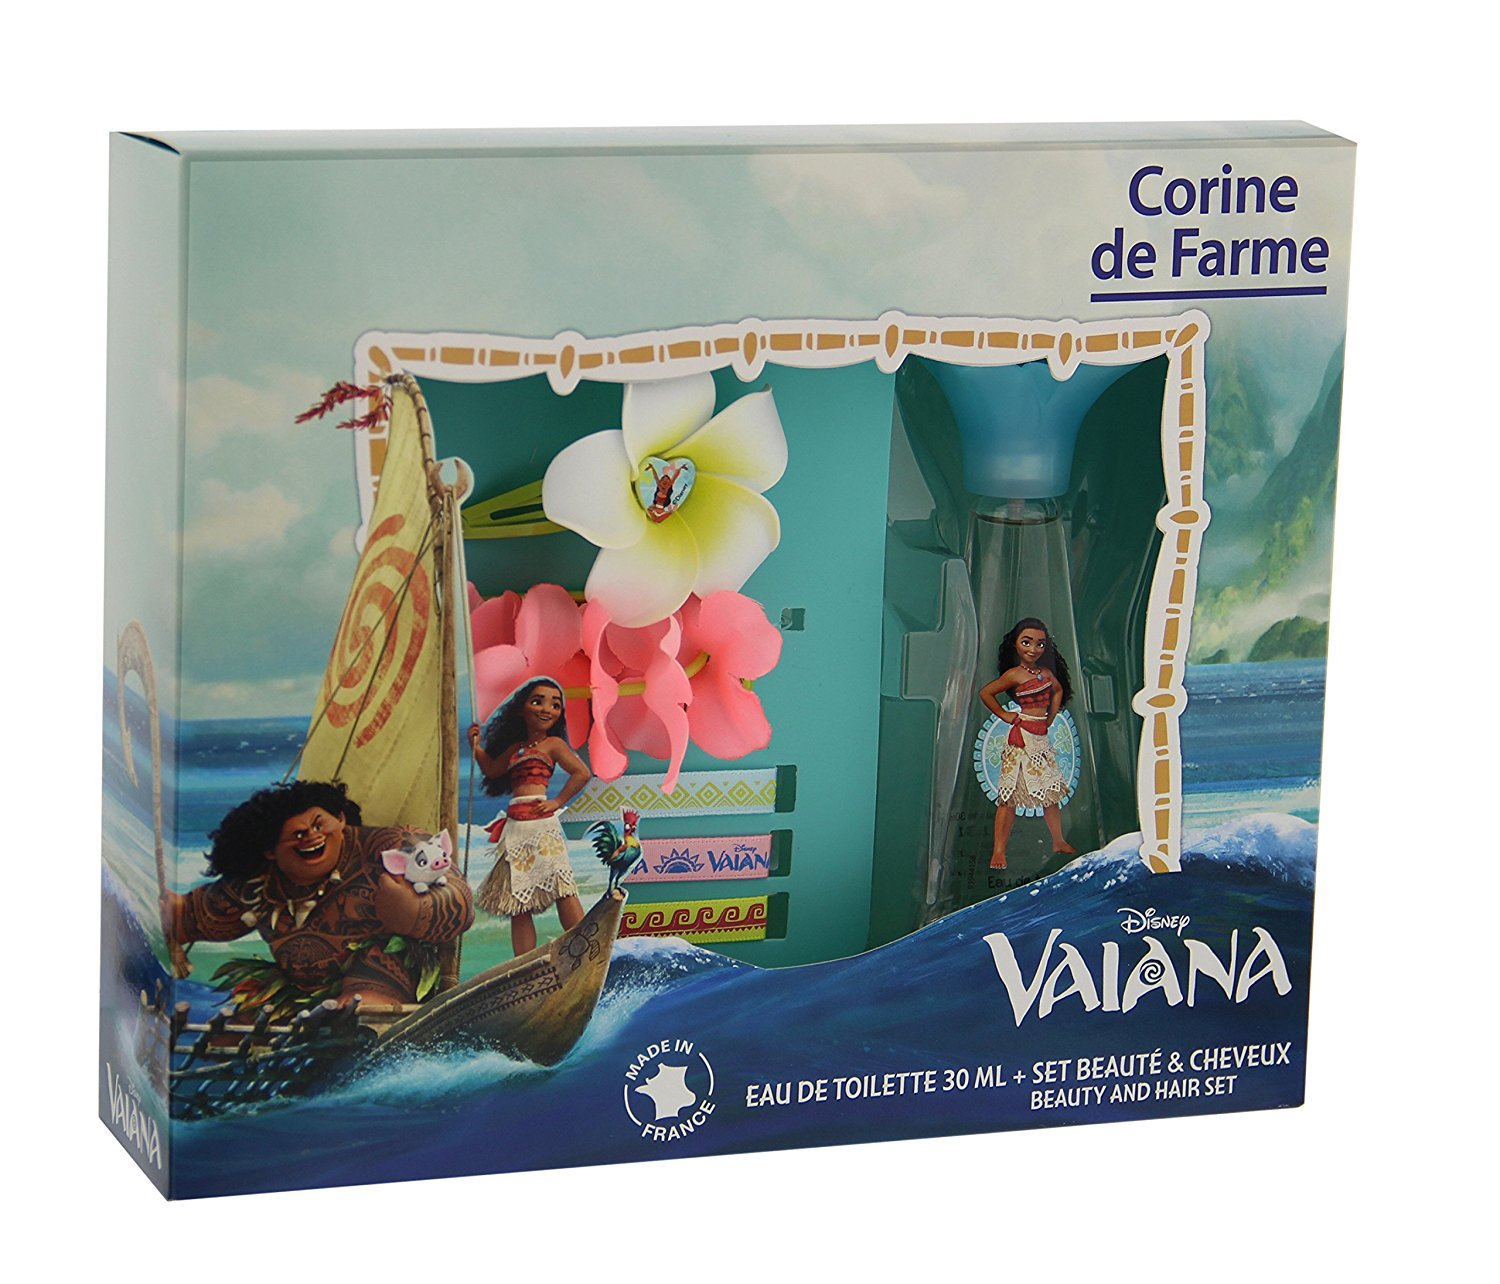 Corine de Farme - Coffret Disney Princesses - Vaiana